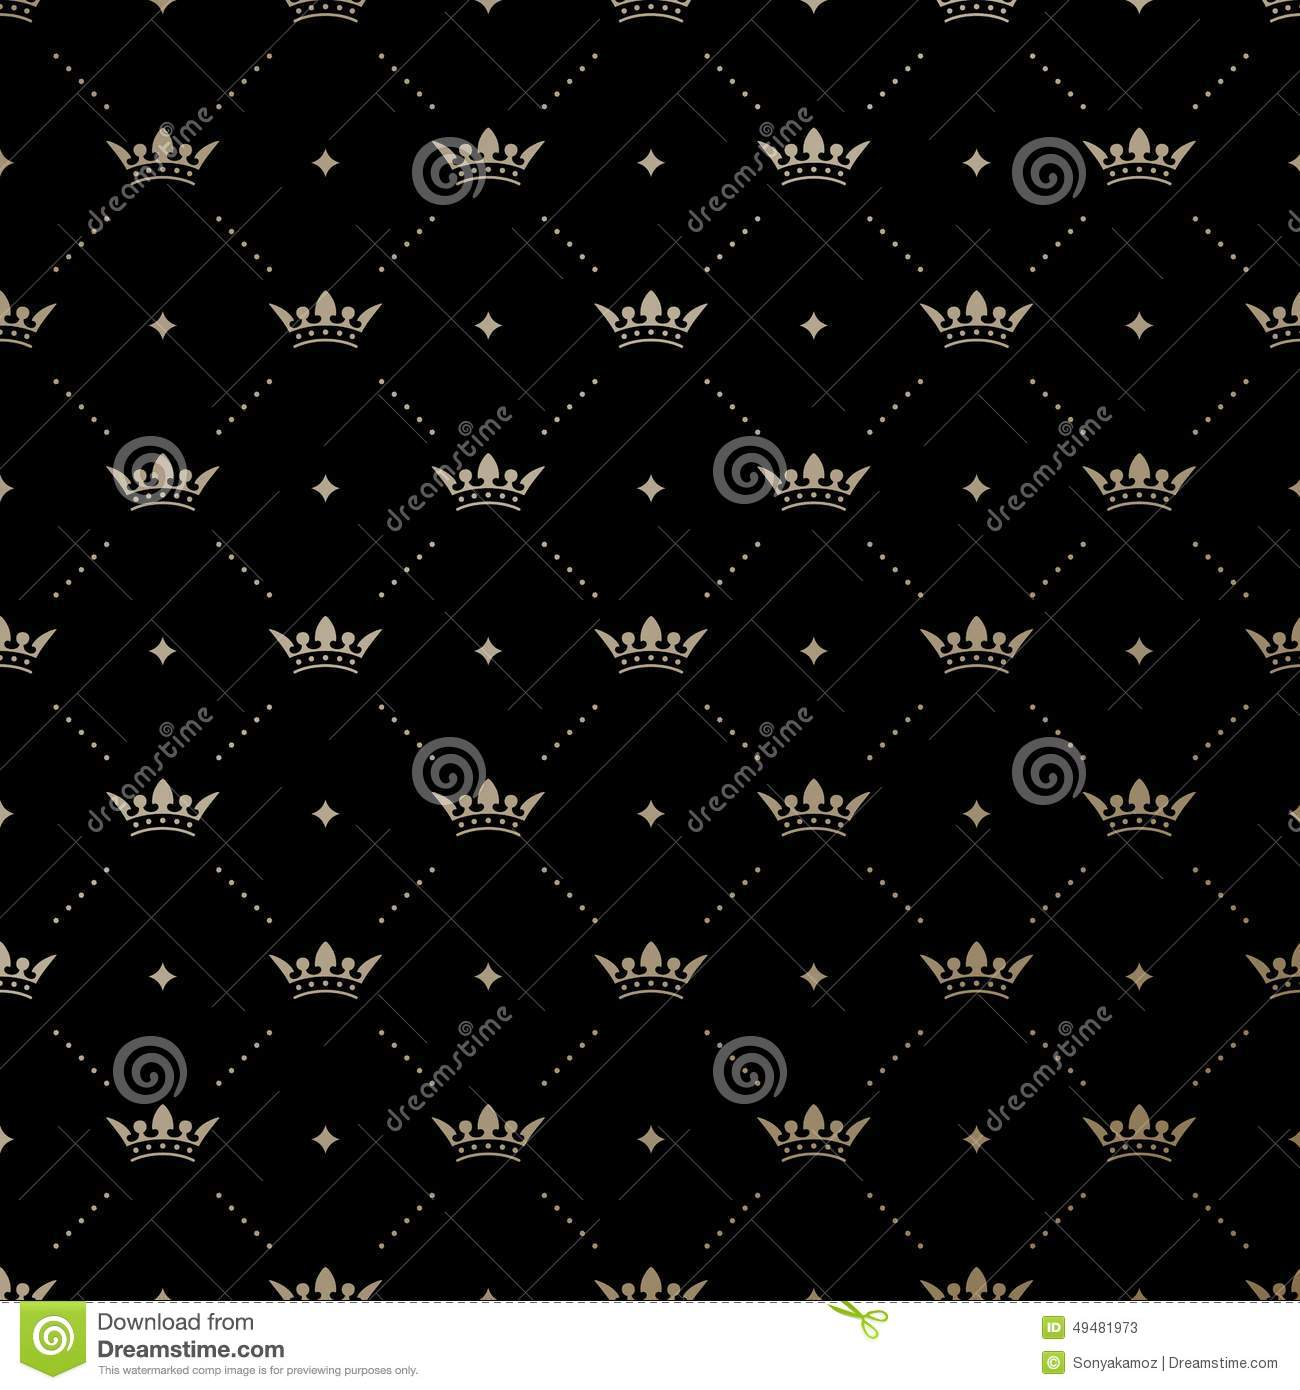 black king crown wallpaper - photo #38